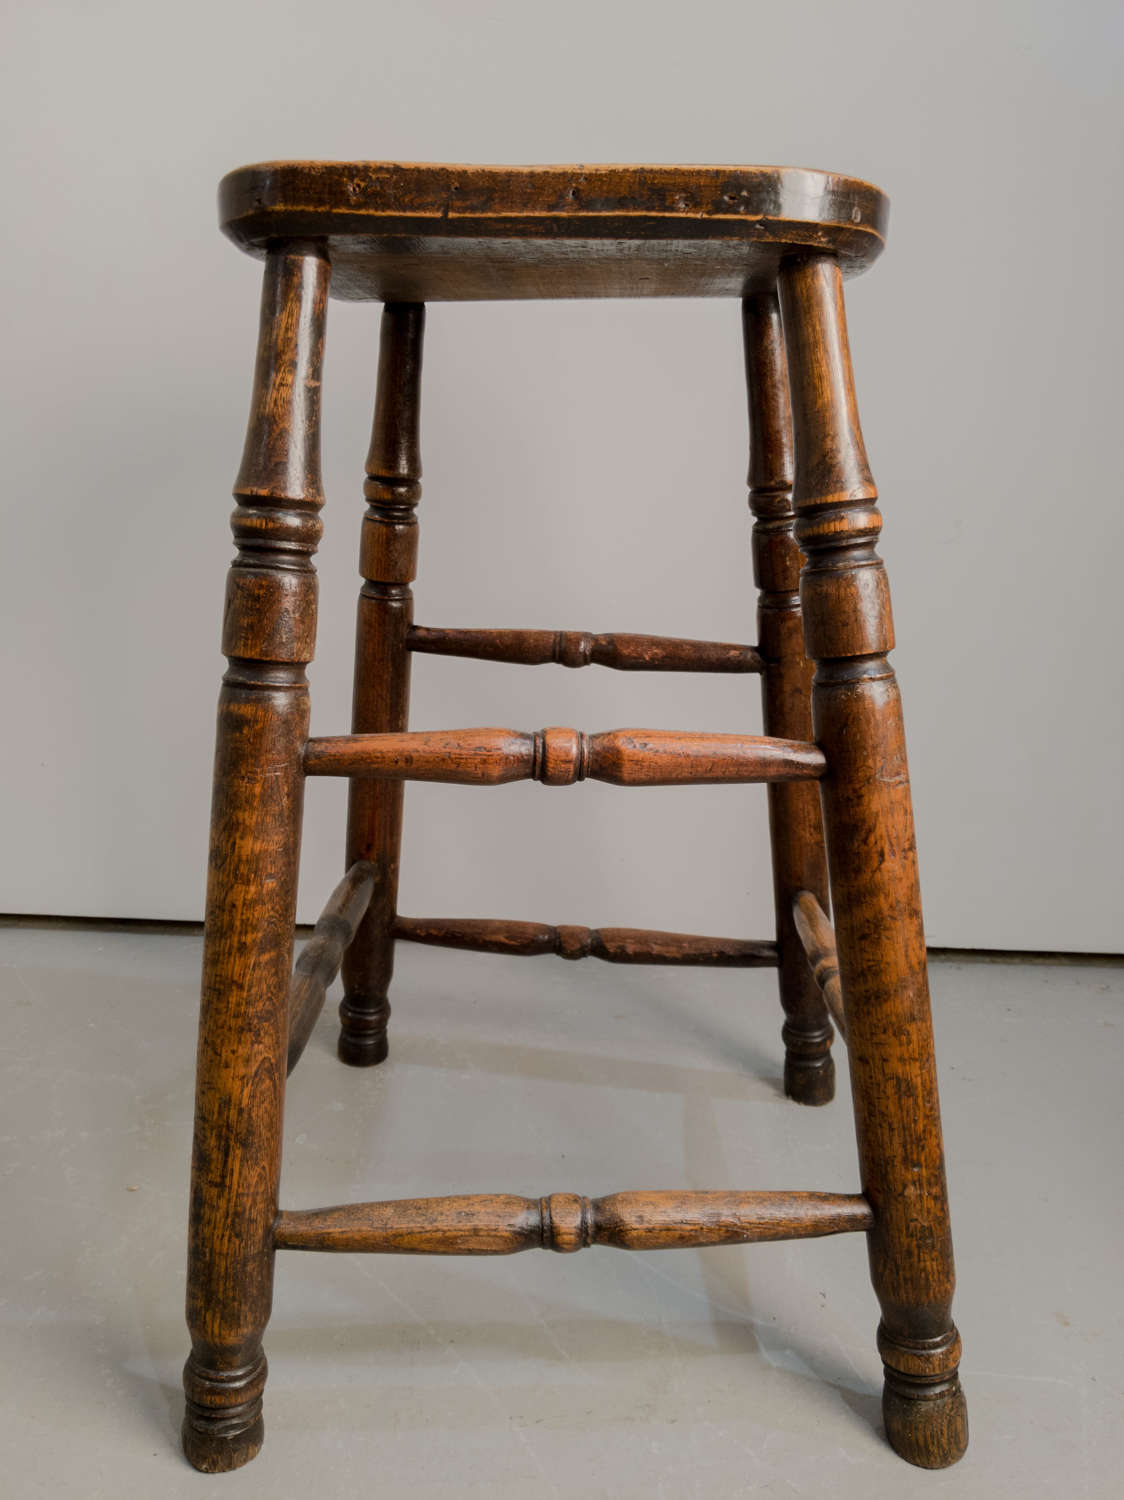 Circa 1890 An English high stool